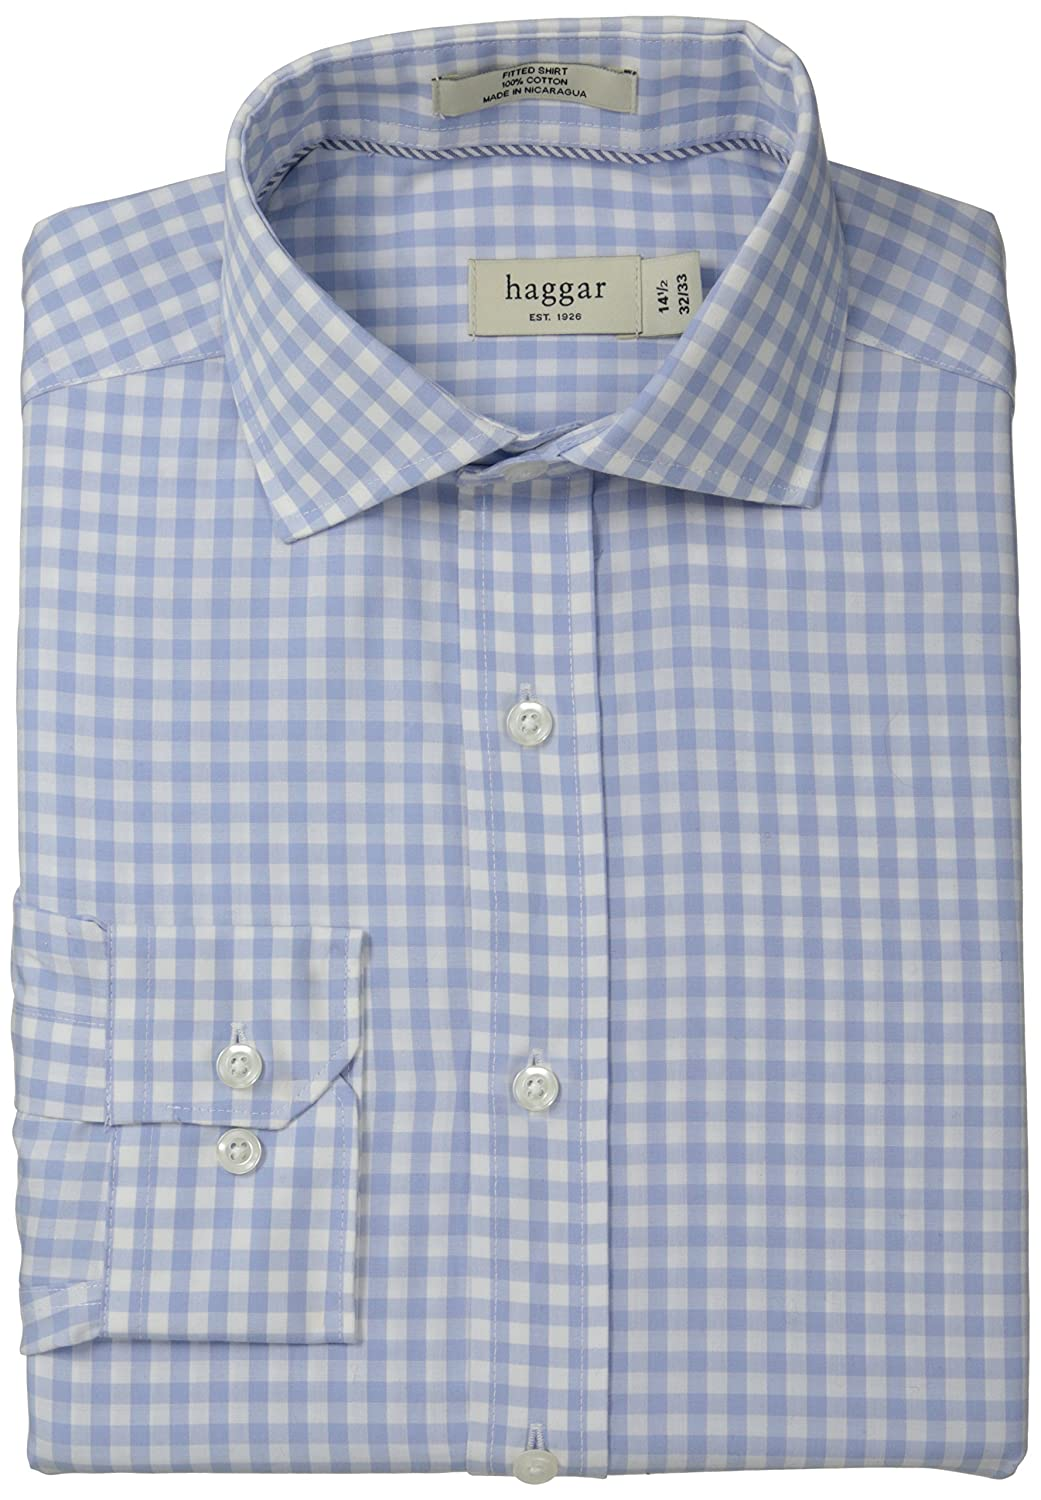 f5fd12e9049 Haggar Men s Gingham Fancy Poplin Long-Sleeve Fitted Shirt  Amazon.ca   Clothing   Accessories